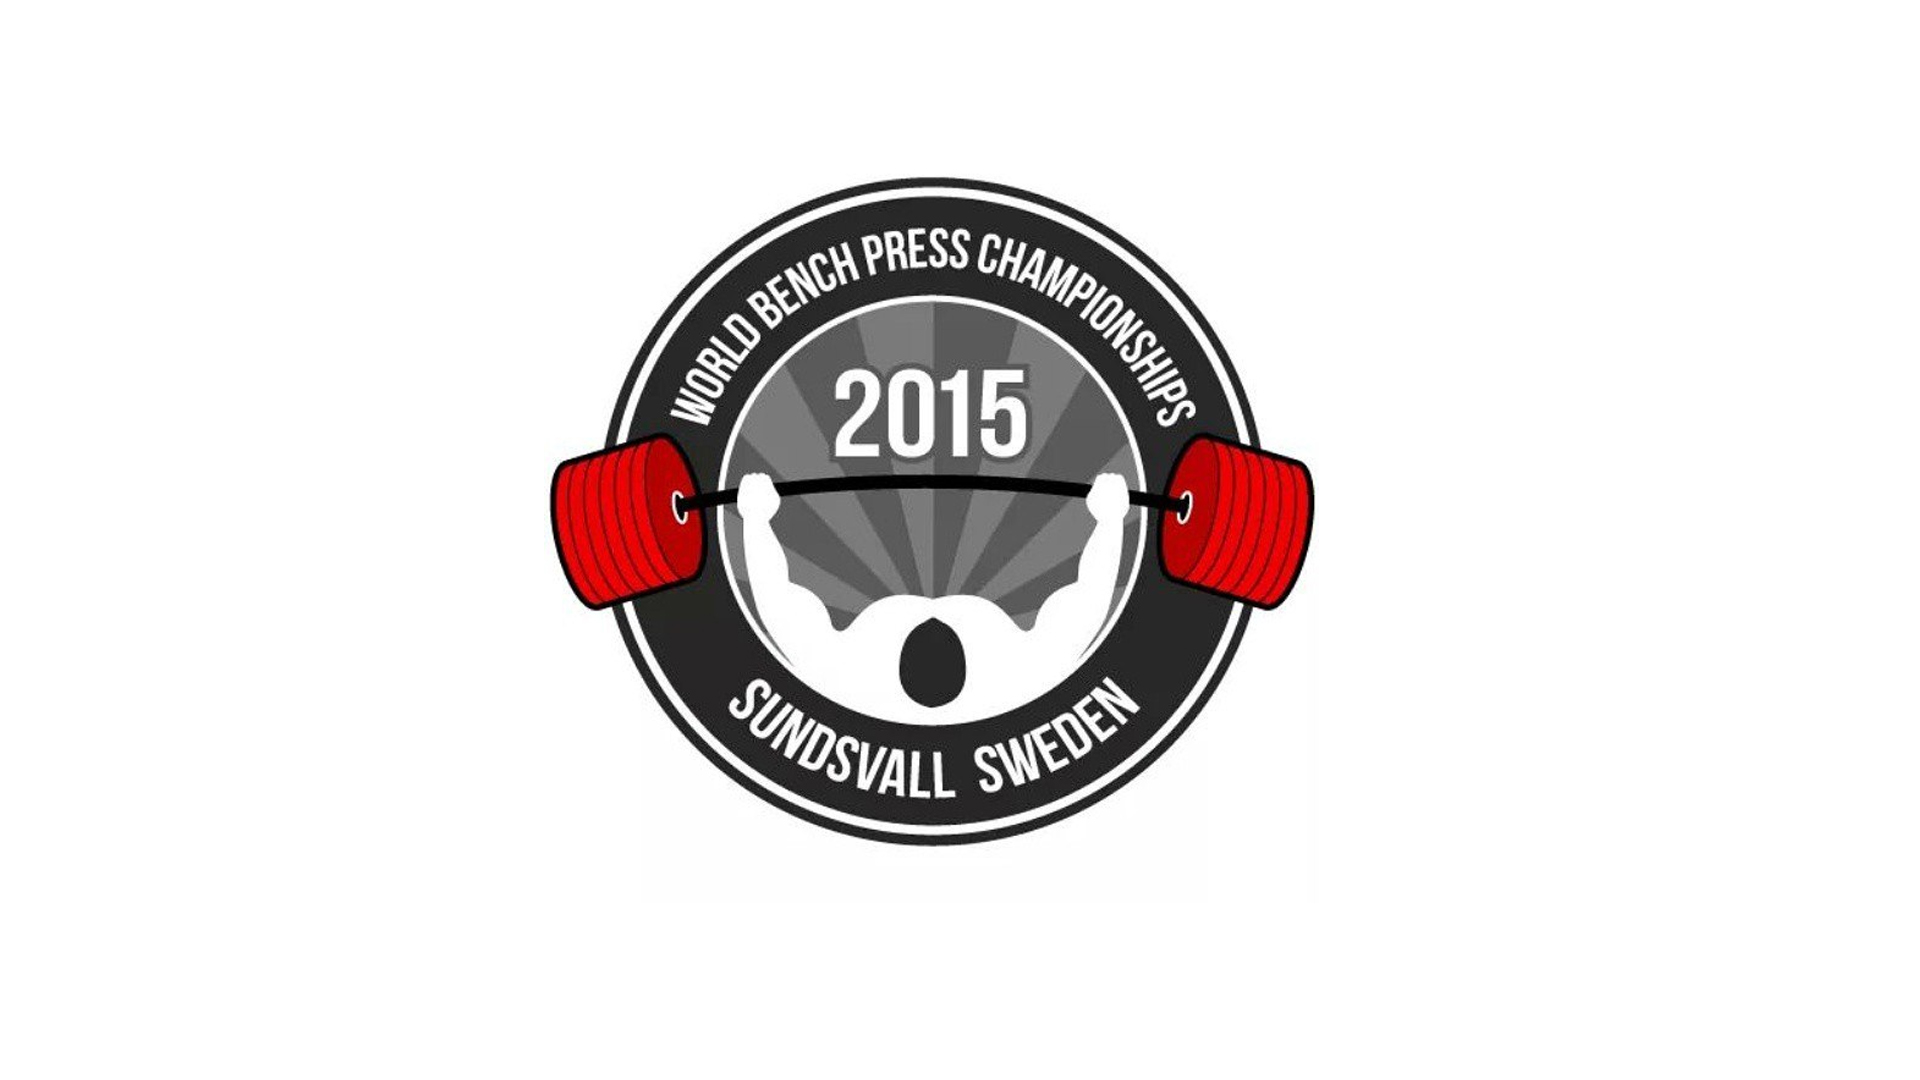 Yan Urusov set a Russian National Record in bench press in a single ply, 227.5kg/500.5lbs @66kg/145.2lbs